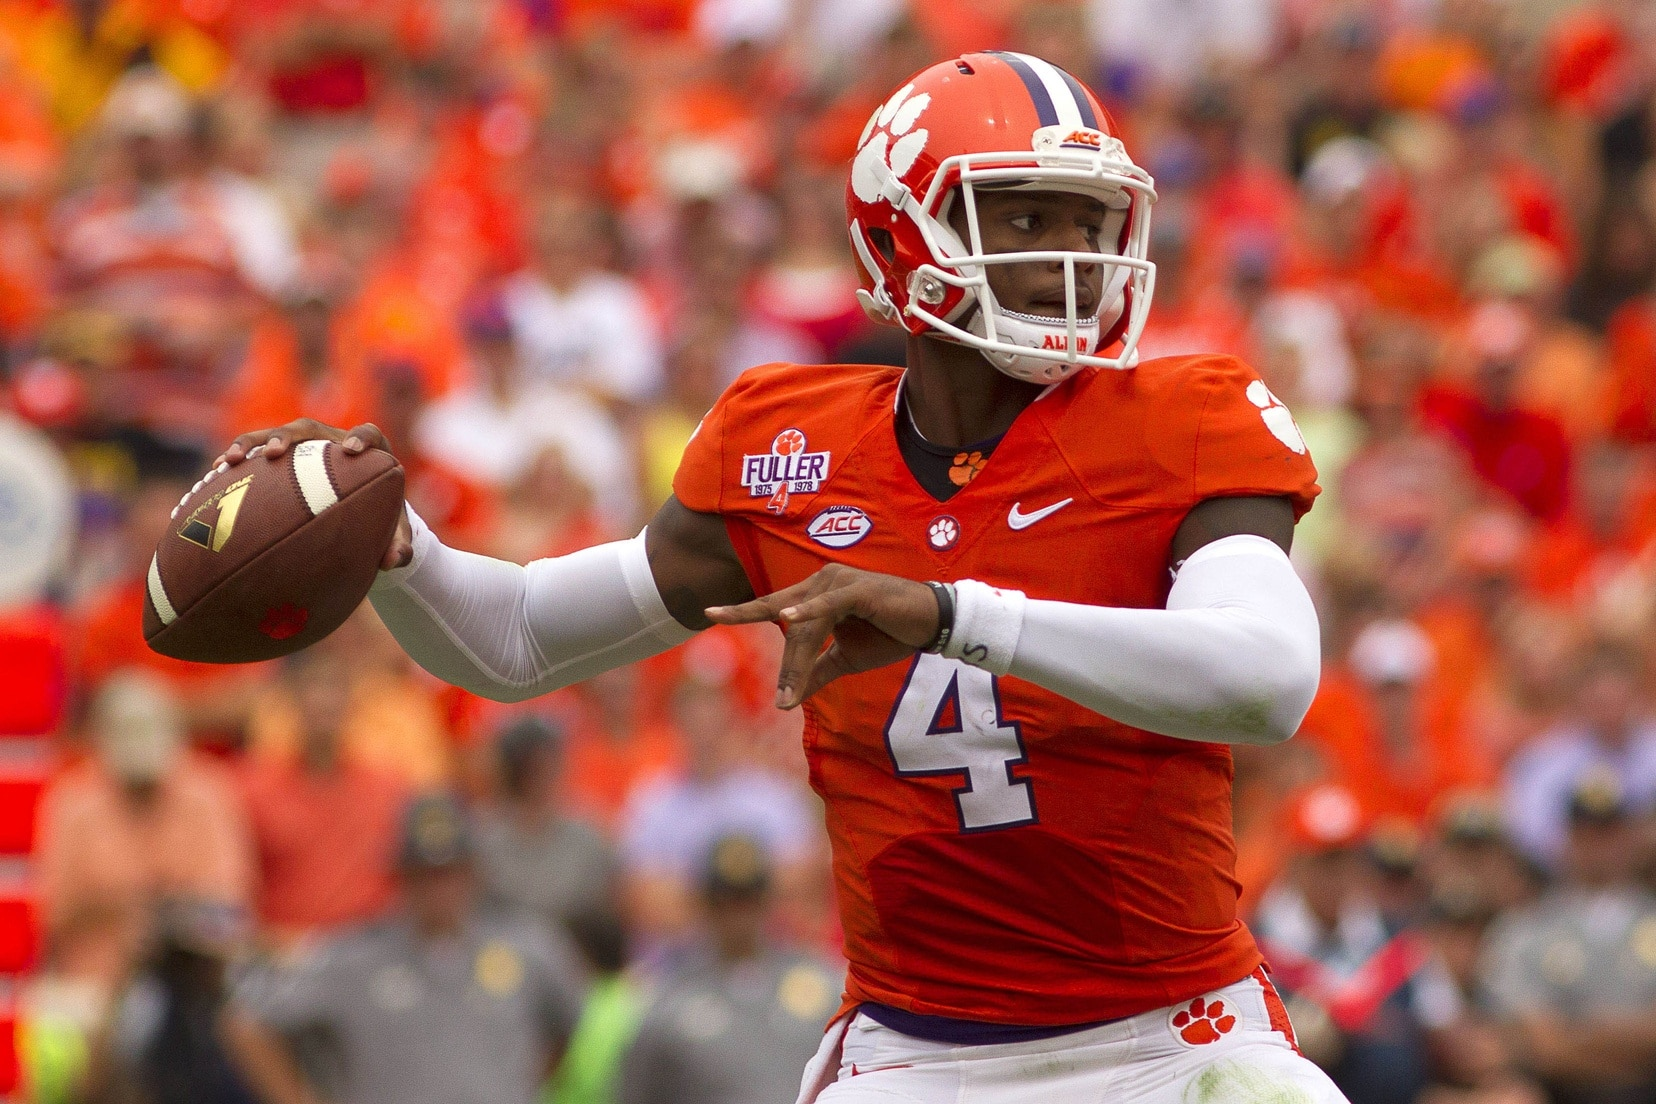 official photos 380b5 7e875 Deshaun Watson leaves game with apparent shoulder injury